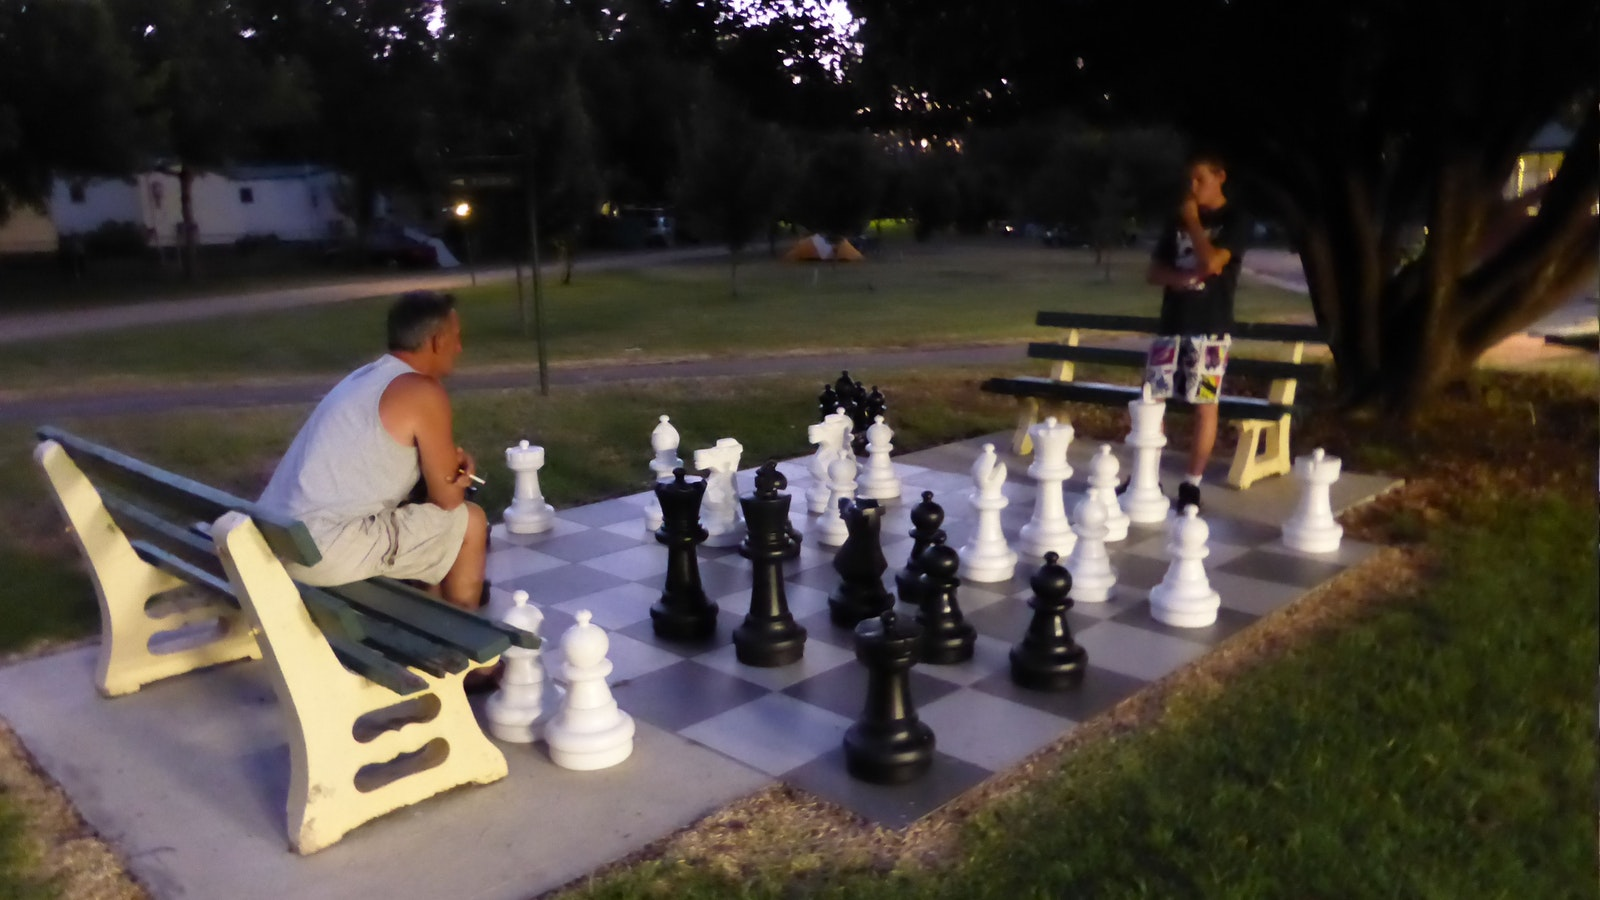 A game of outdoor chess